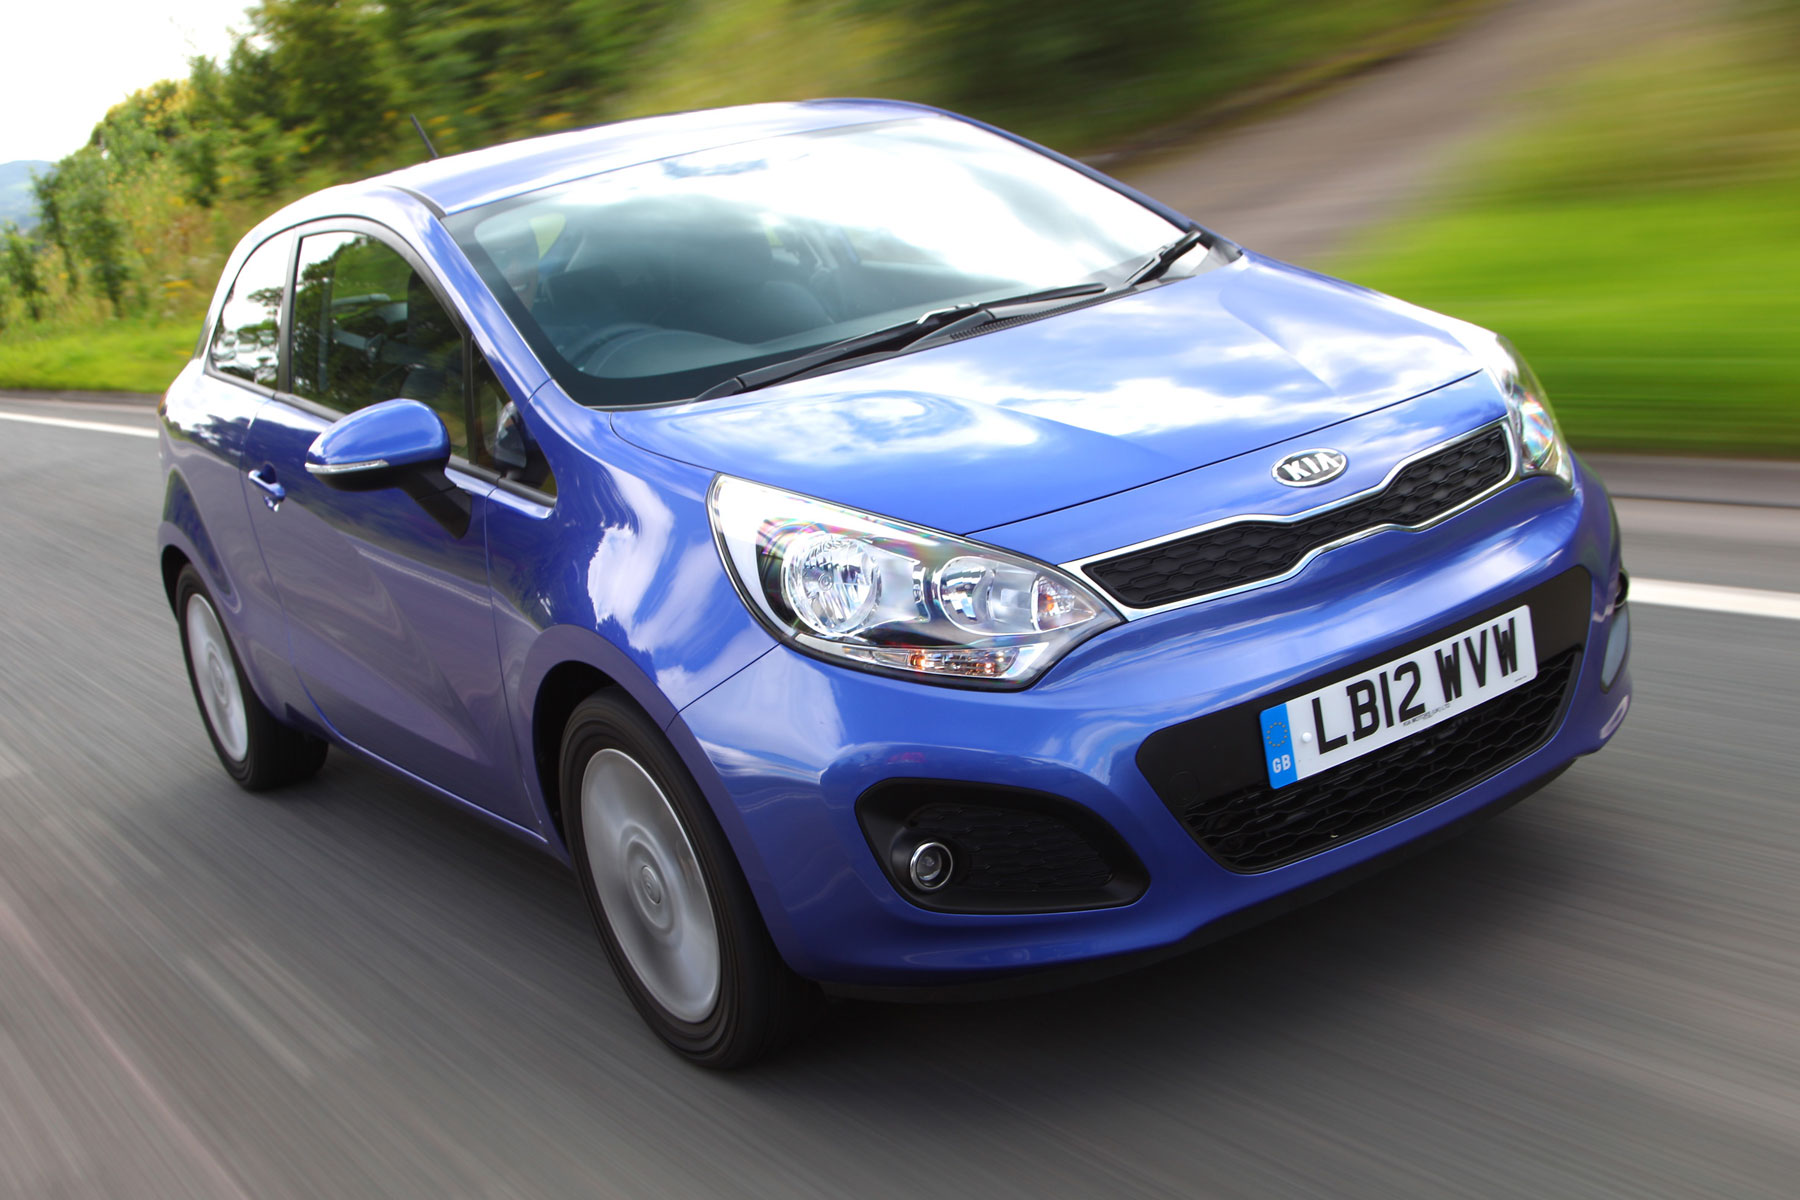 The 20 best first cars: Kia Rio